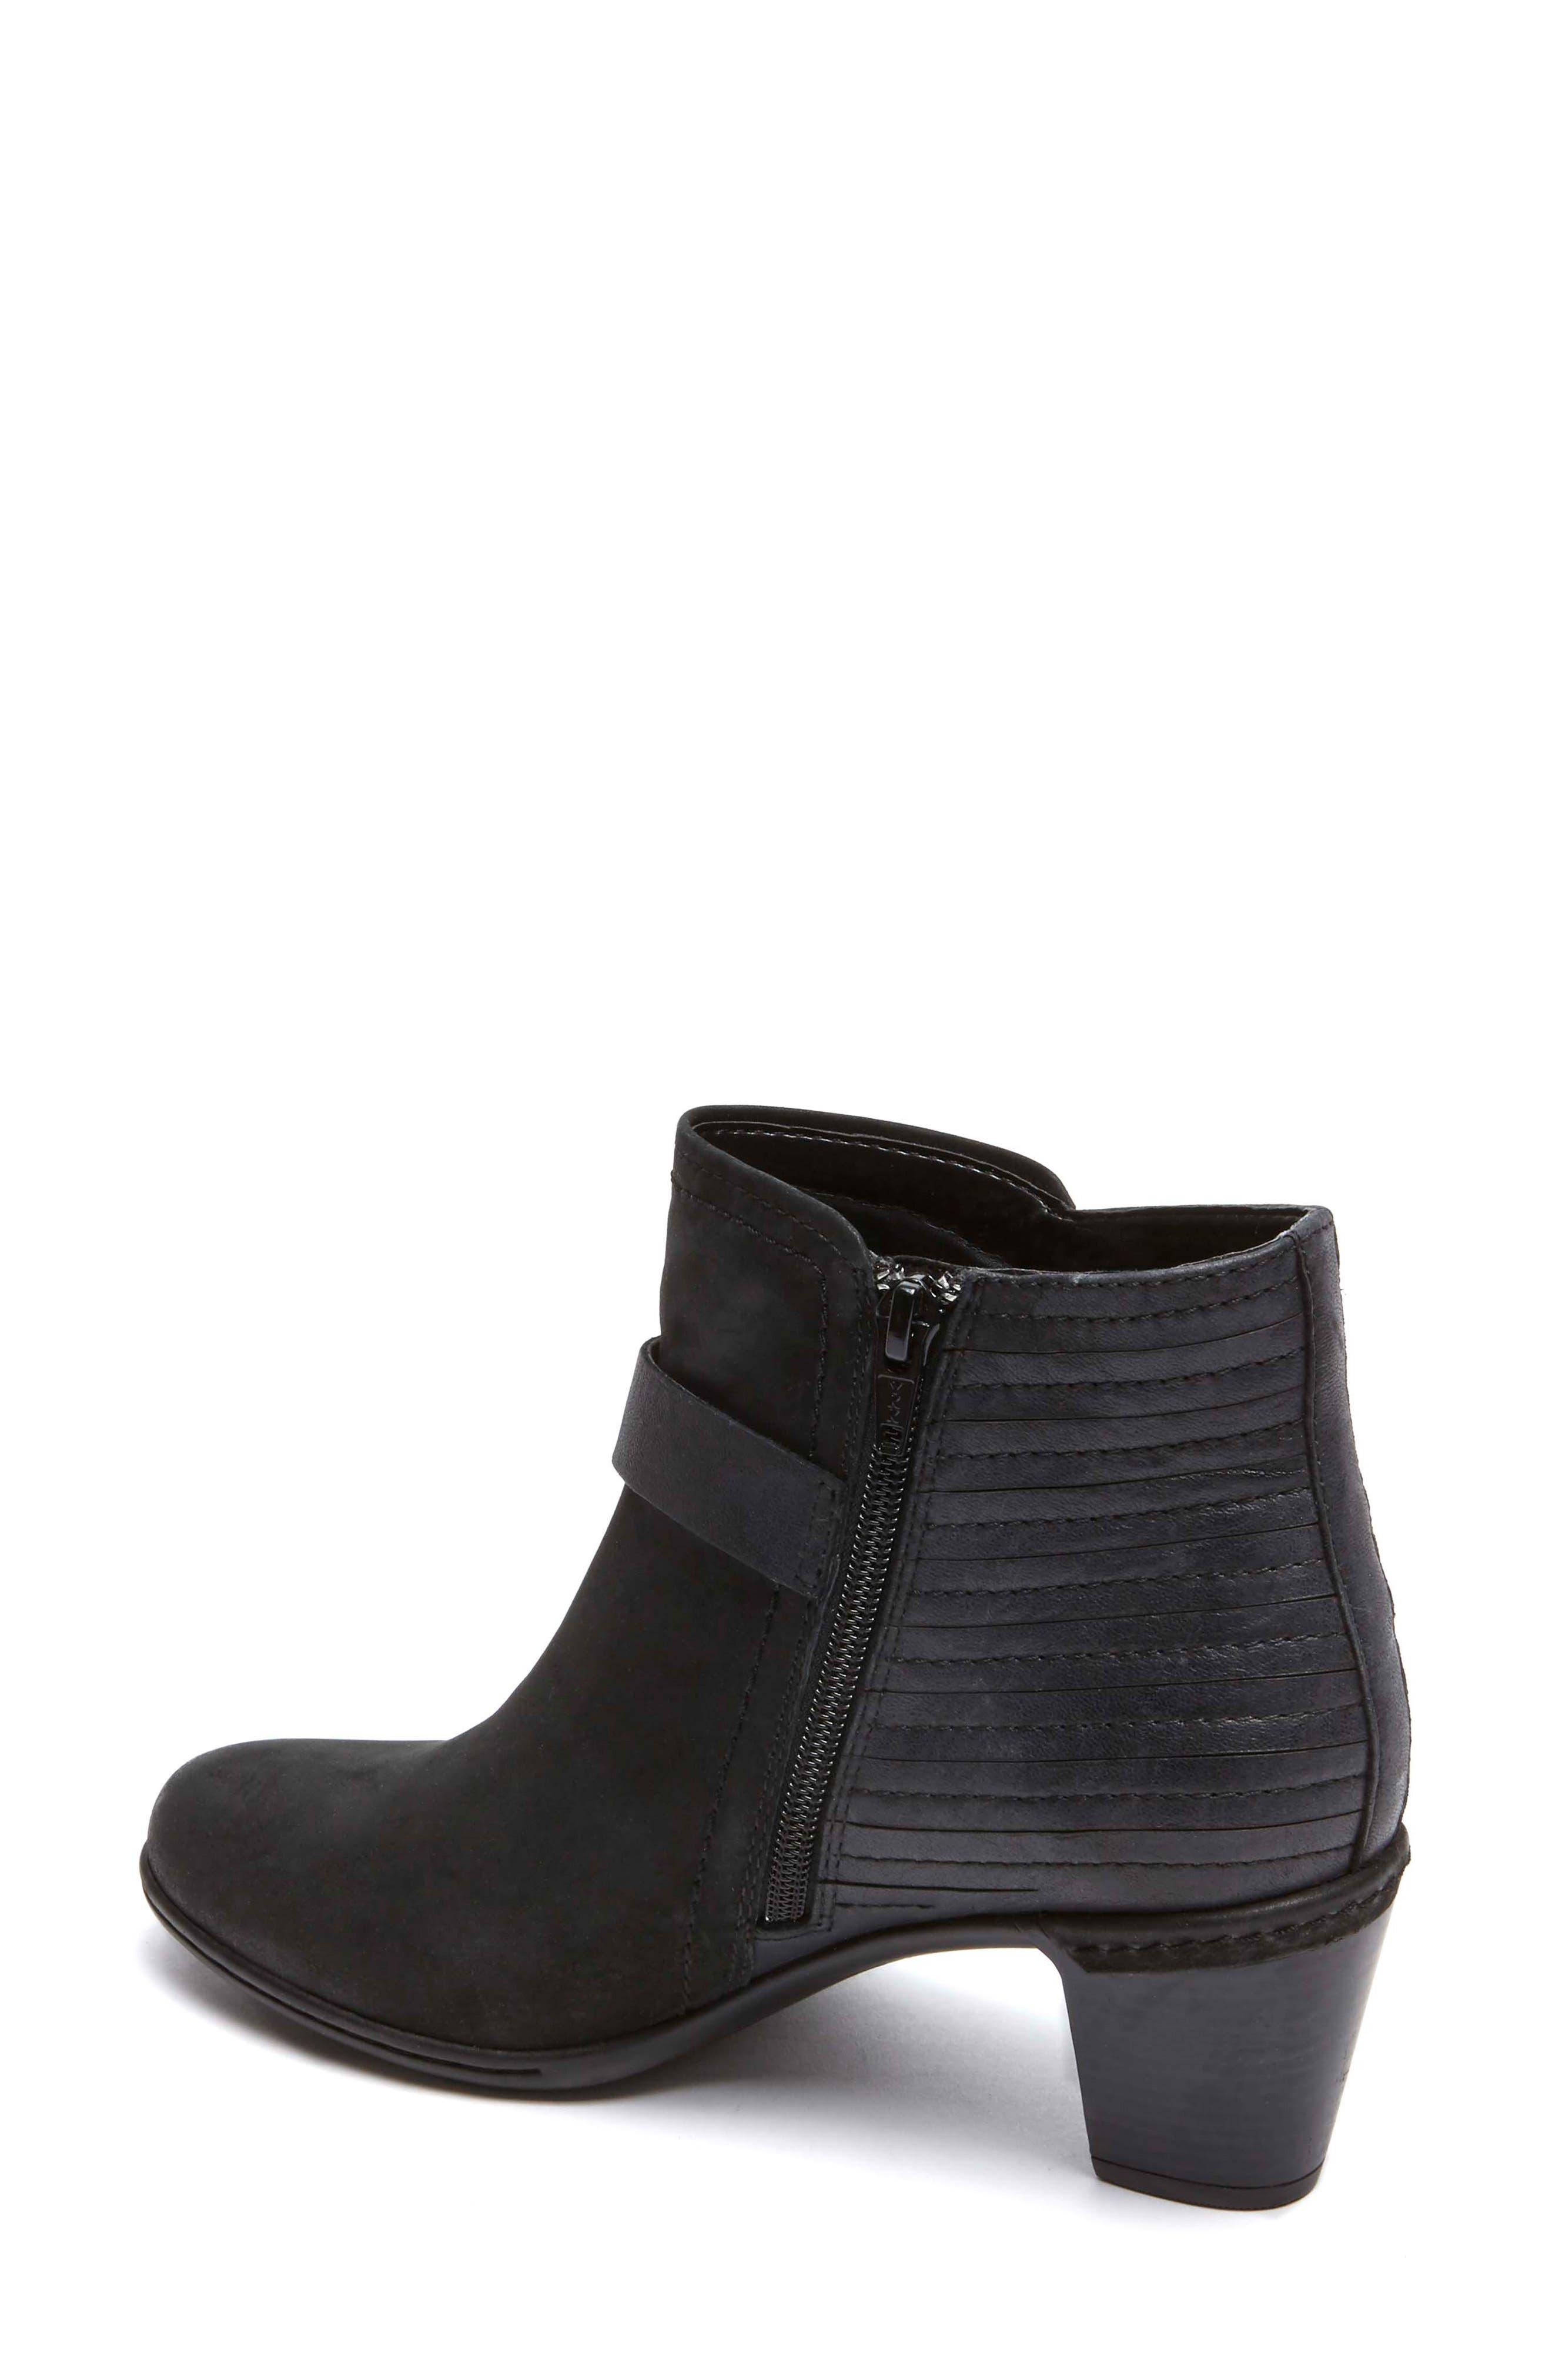 Alternate Image 2  - Rockport Cobb Hill Rashel Buckle Bootie (Women)